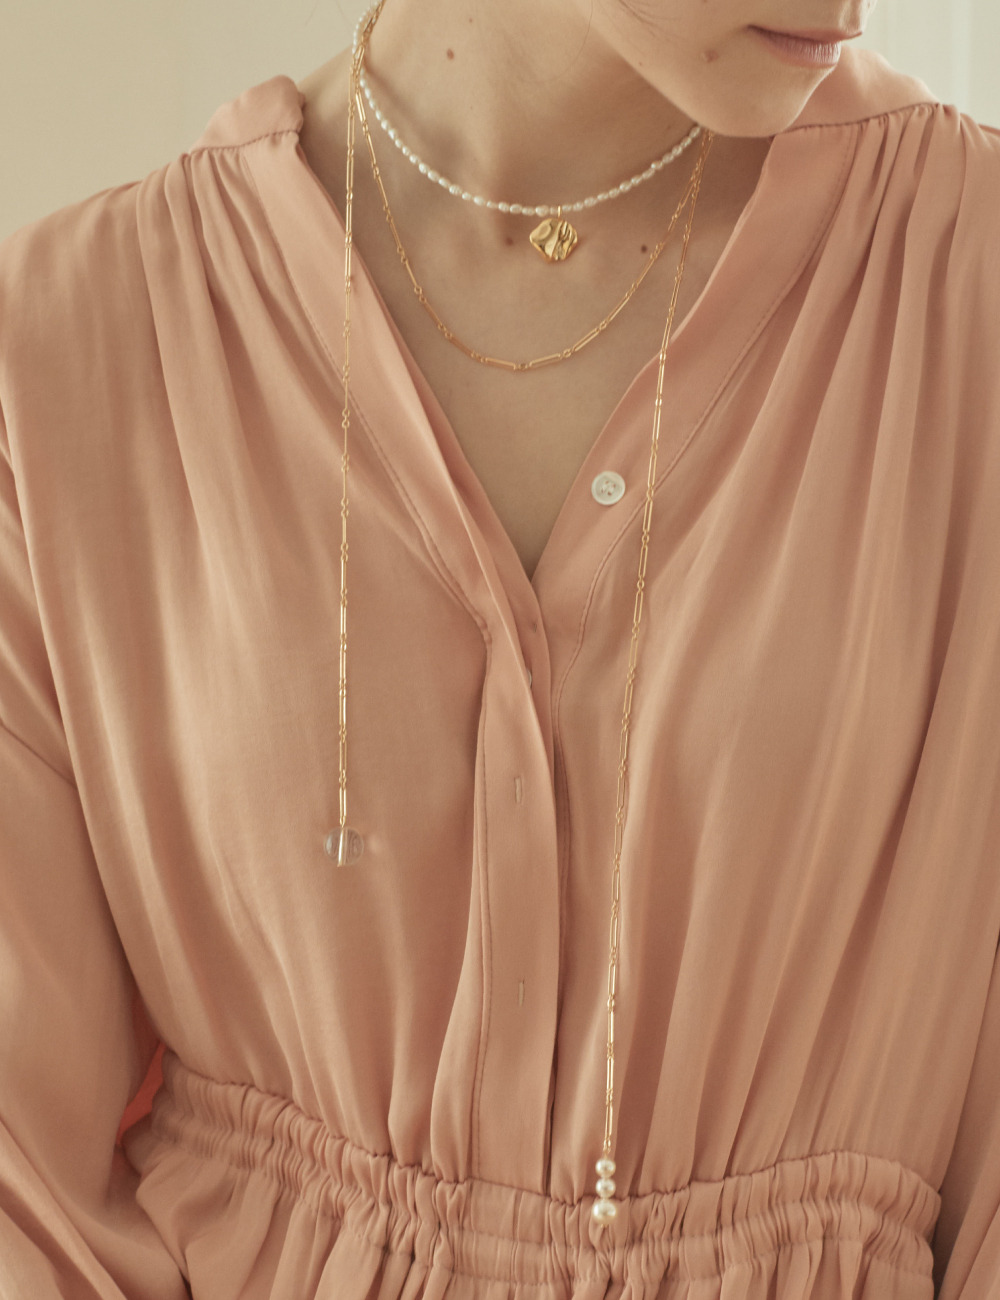 Long drape Necklace